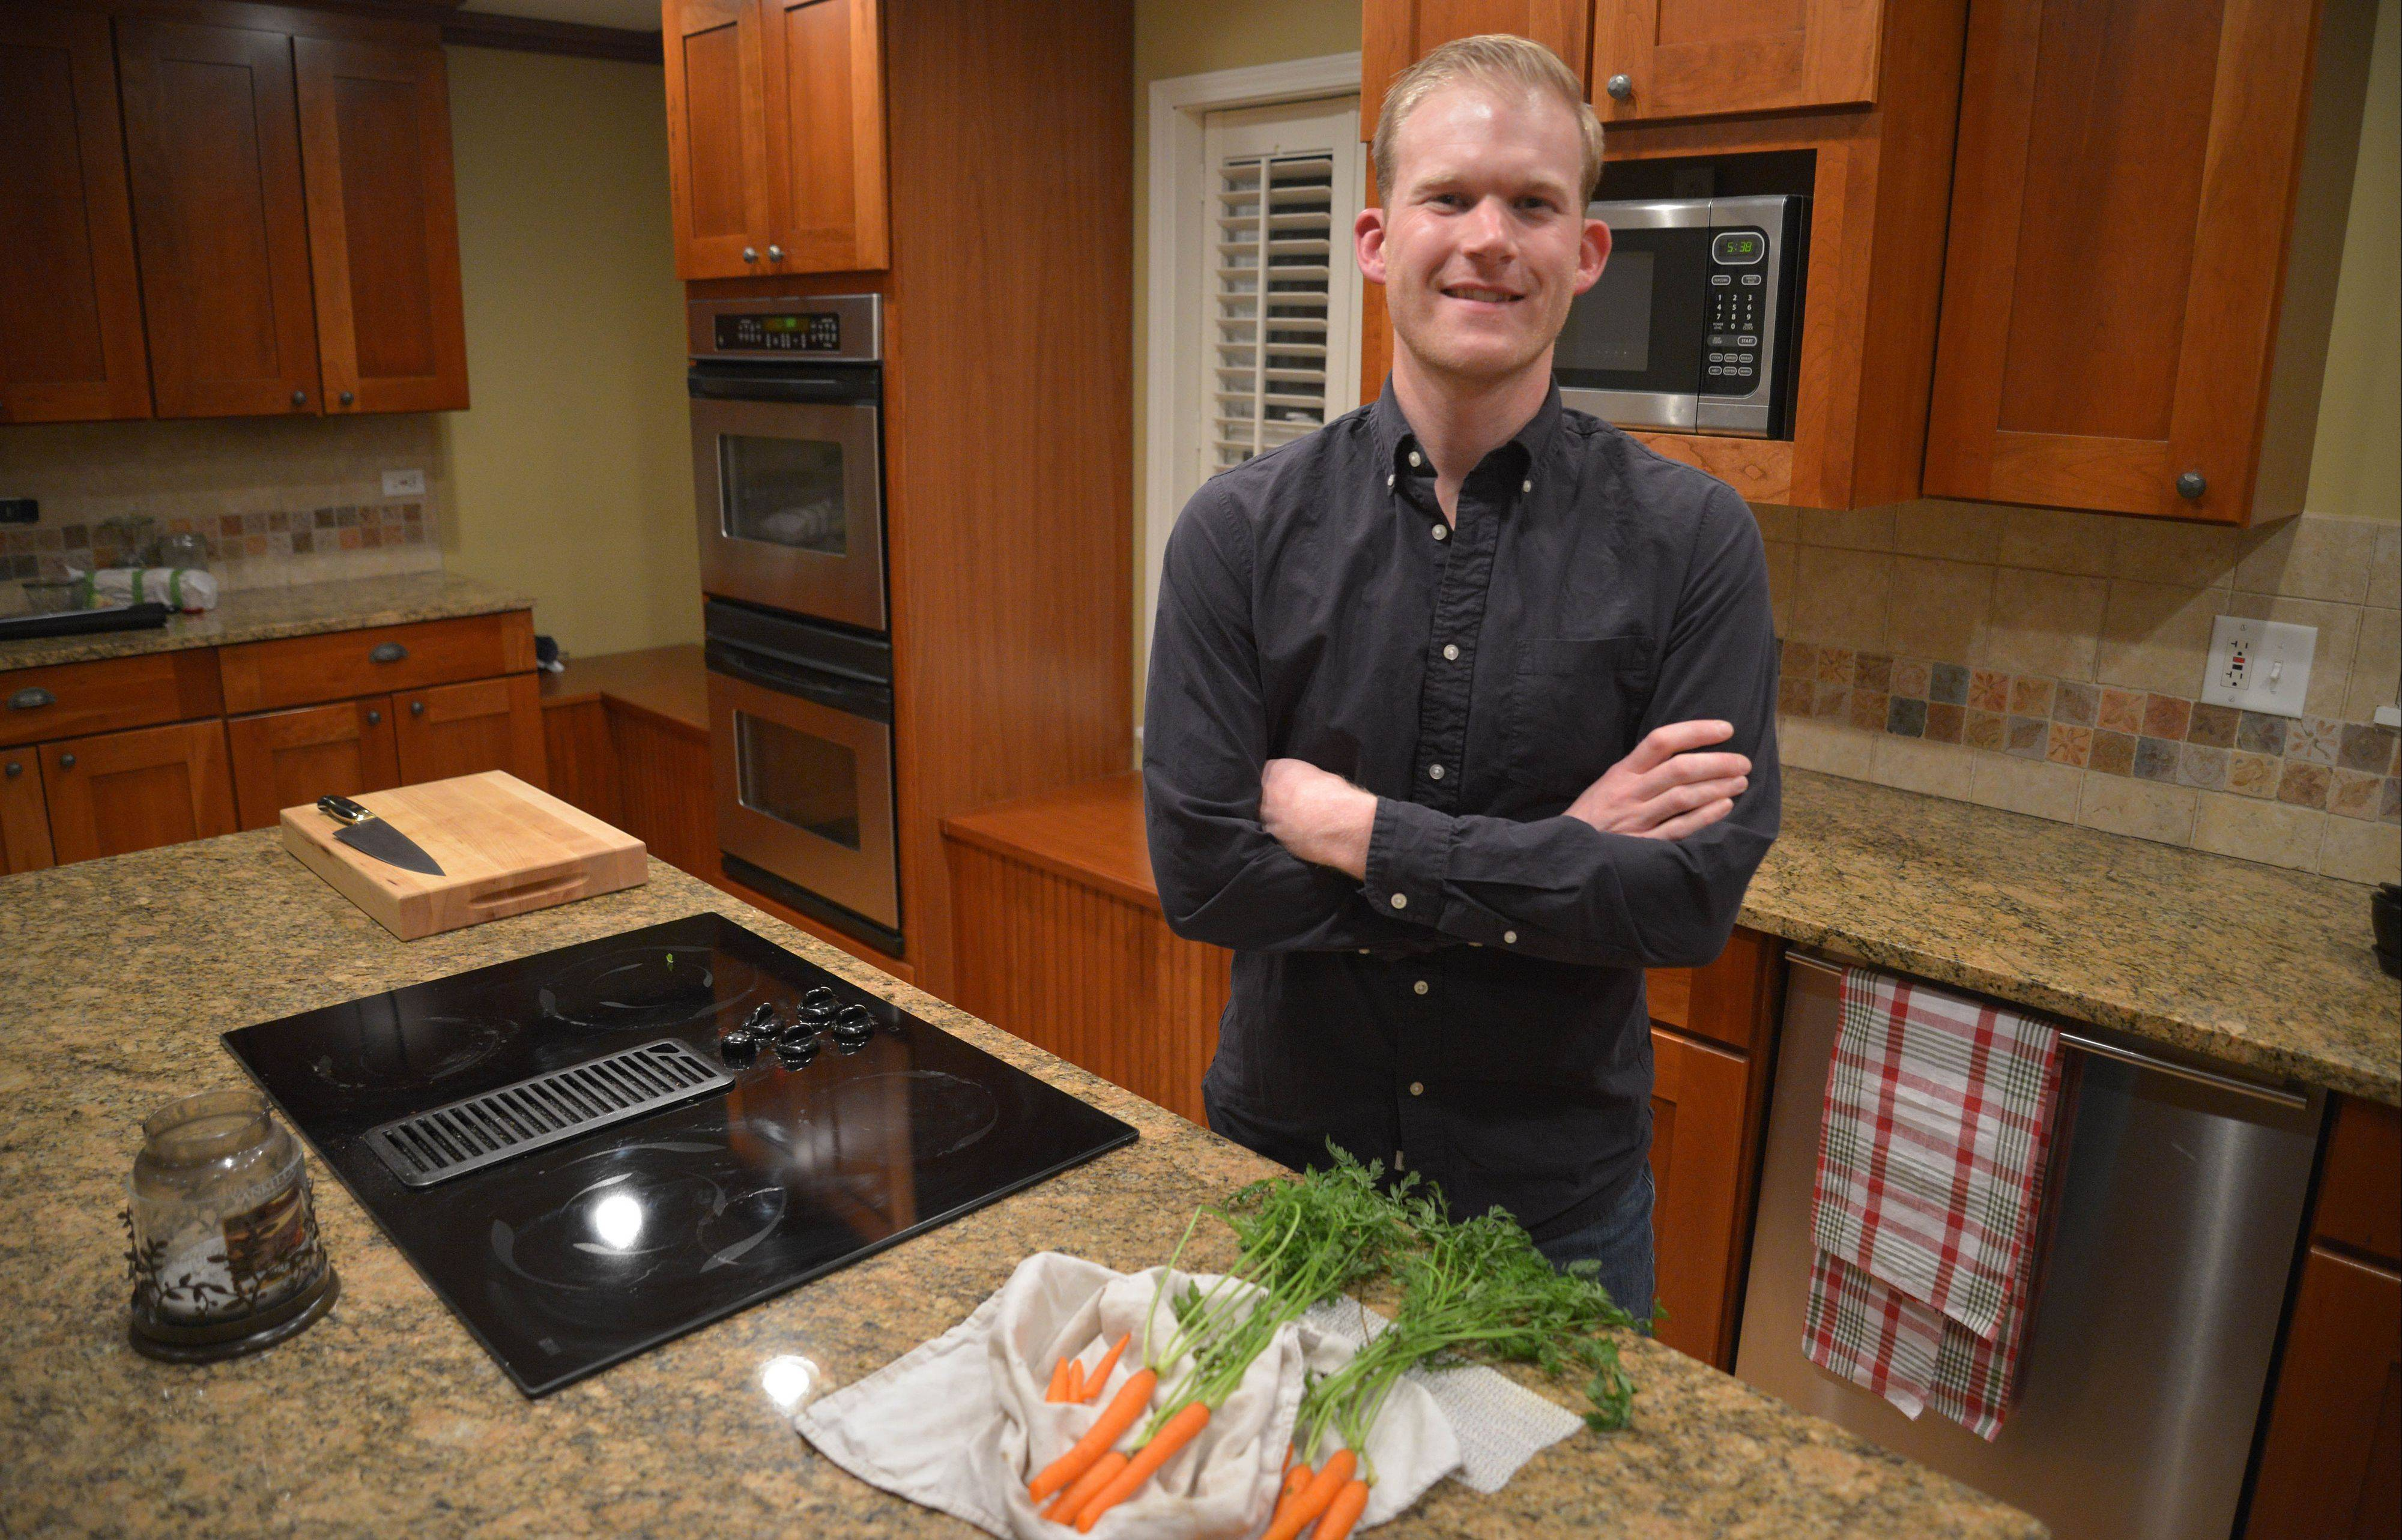 It's all about technique for Elliott Papineau. The Glen Ellyn dad lets technique and ingredients guide his meal planning.